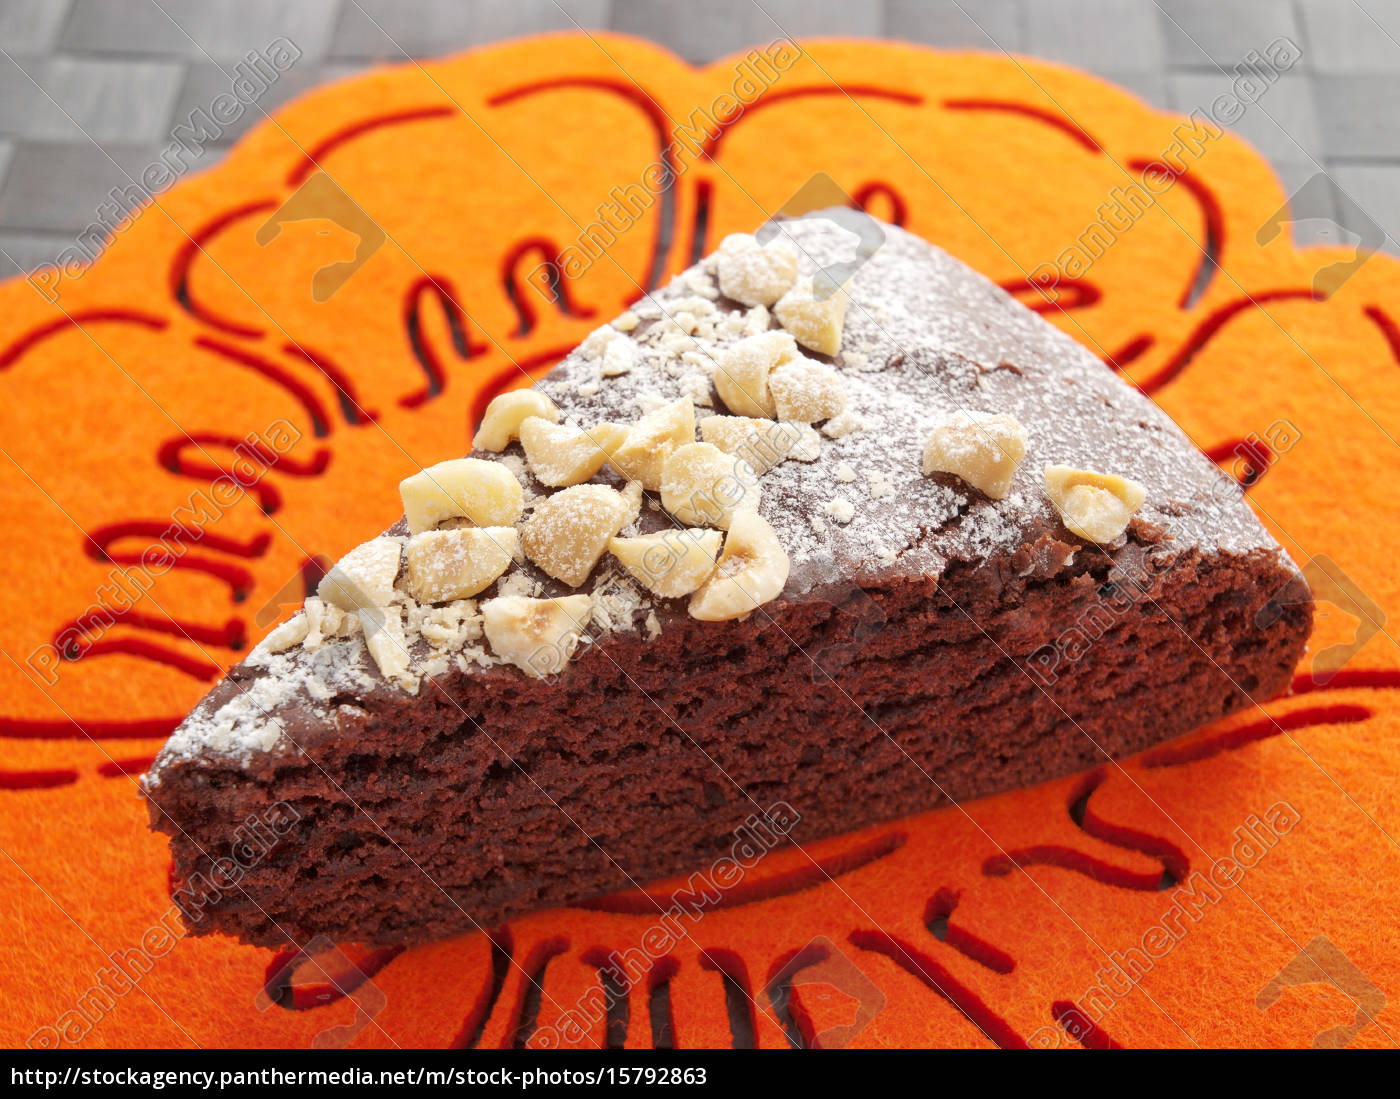 homemade, chocolate, cake, homemade, chocolate, cake, homemade, chocolate - 15792863